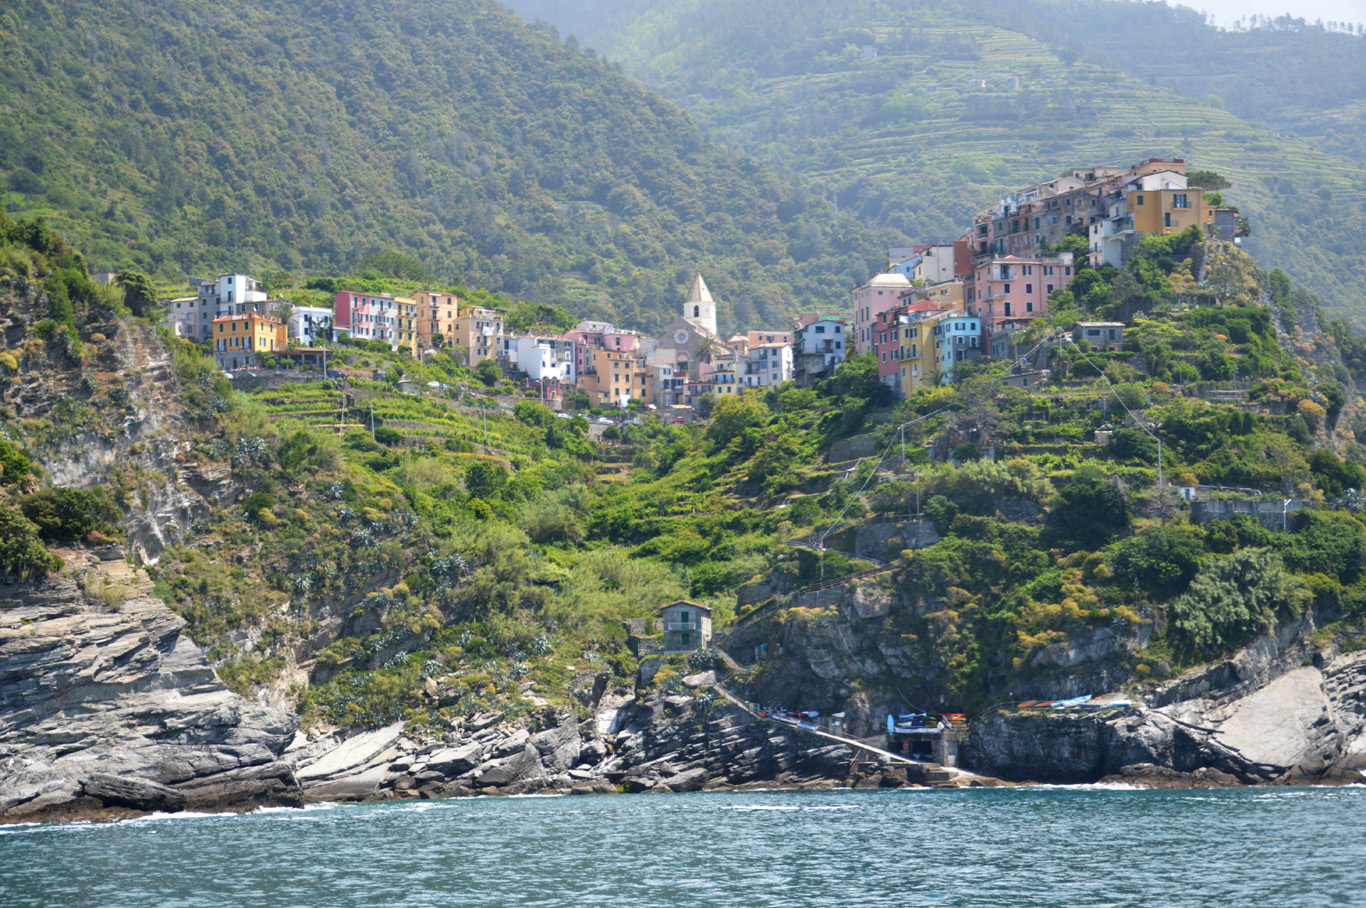 The third village - Corniglia seen from the boat (number 4 on the map)